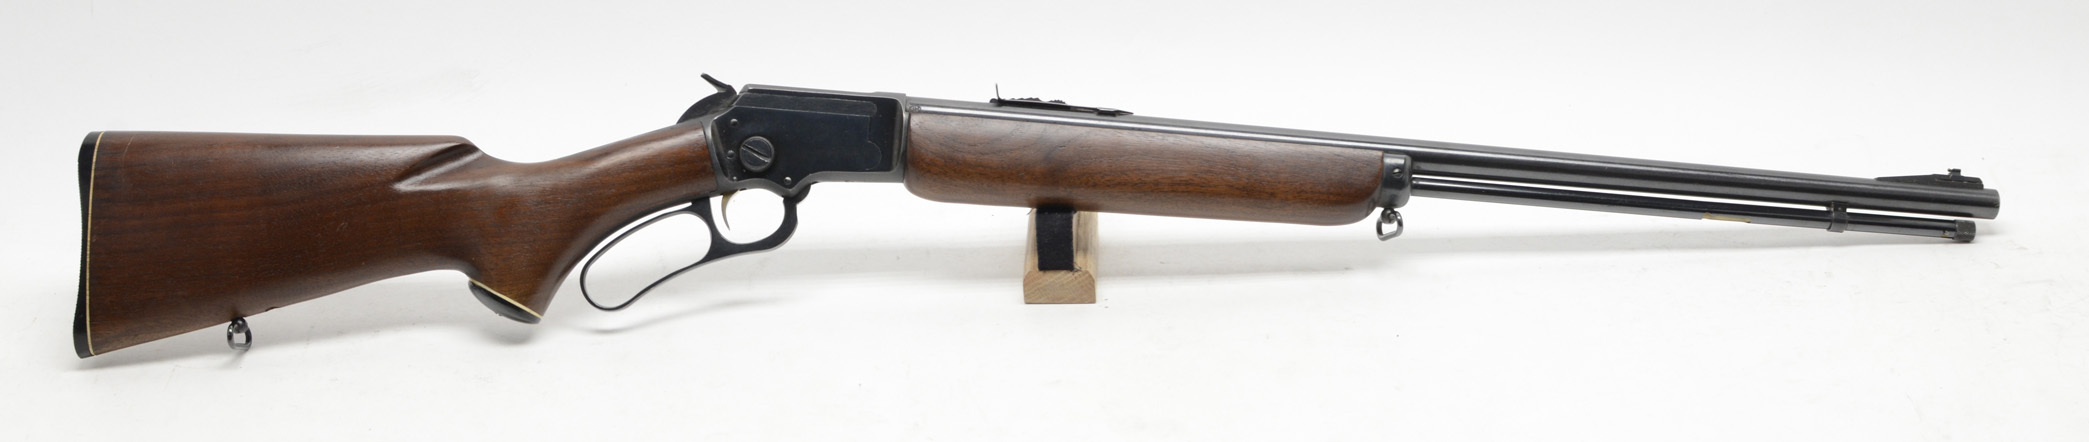 Marlin Golden 39A